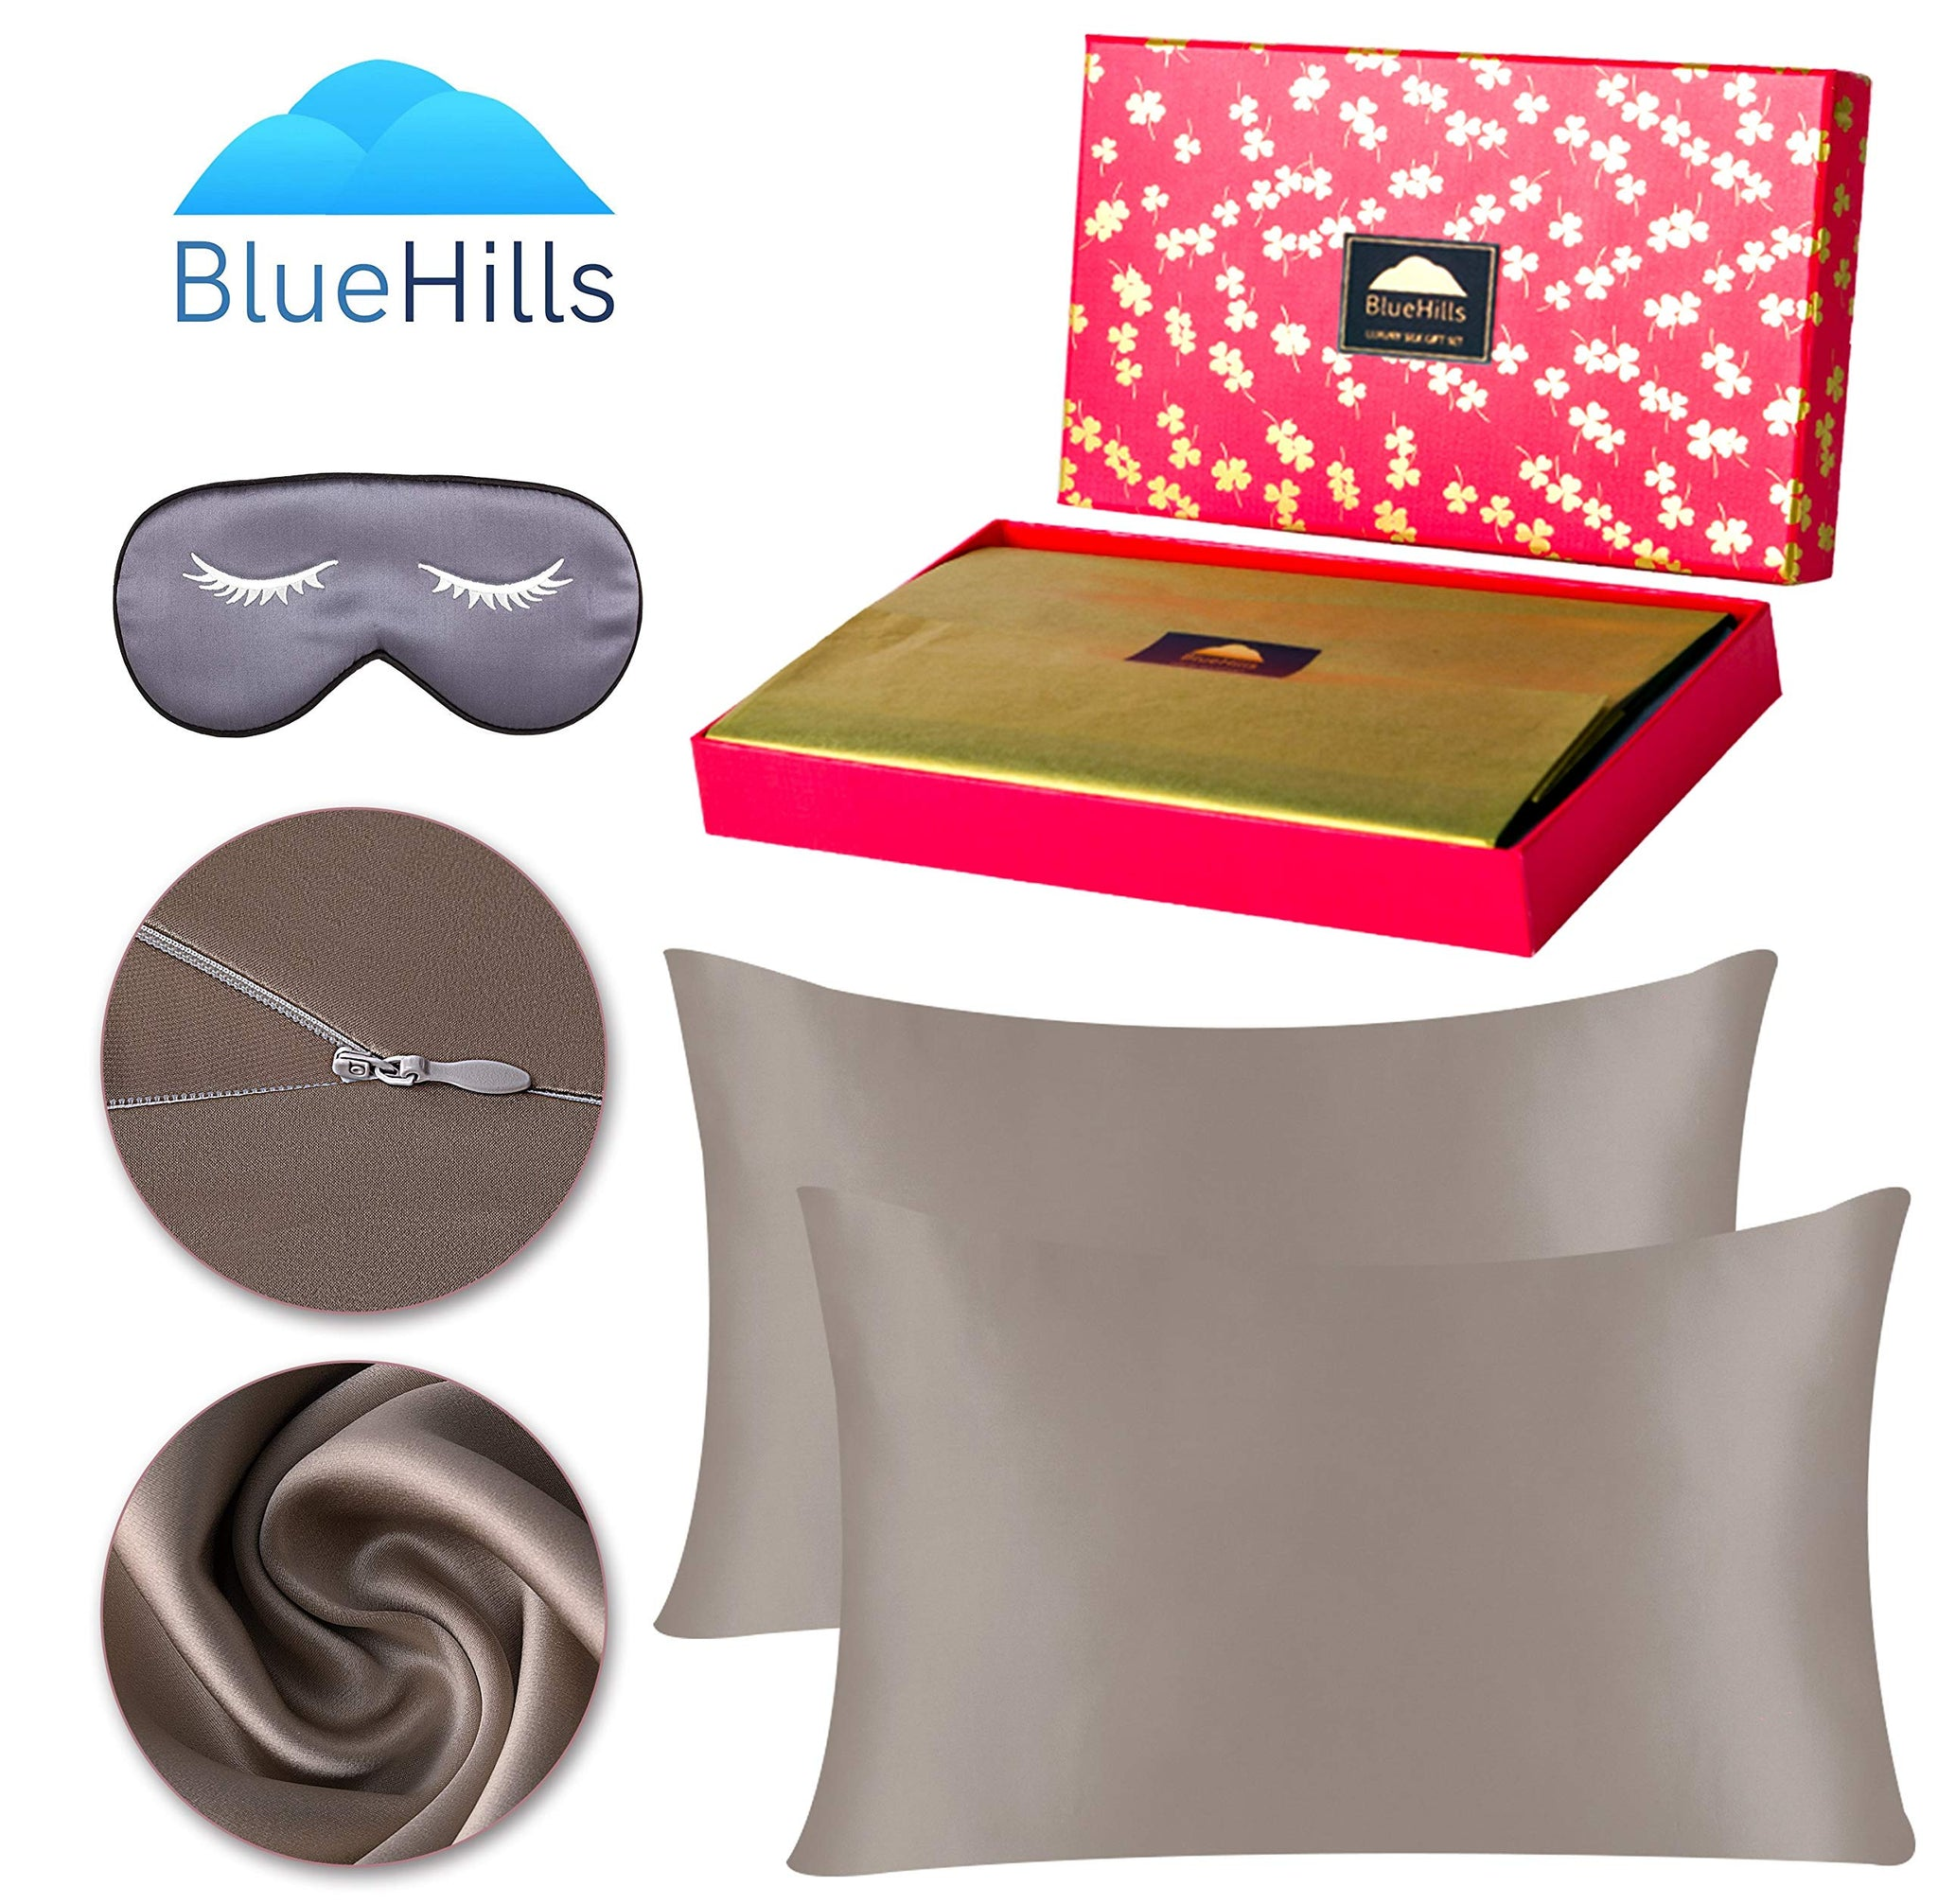 BlueHills 19 Momme Pure Mulberry Silk Pillowcase 3 piece Gift set - Standard- Taupe